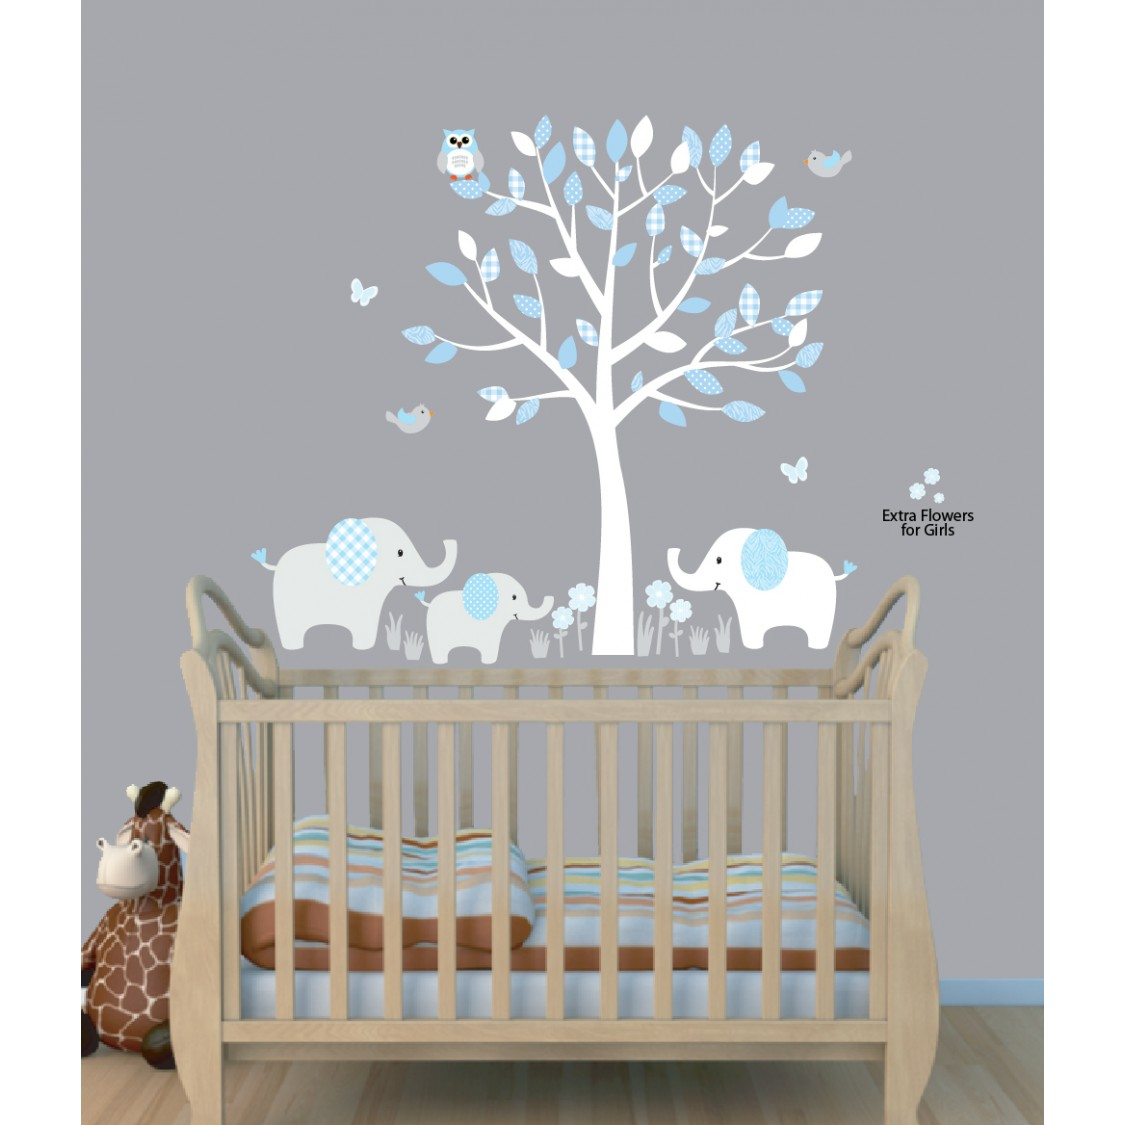 Famed Blue Nursery Jungle Wall Decals Nursery Nursery Wall Decals Nz Nursery Wall Decals Jungle Animals Boys Rooms Baby Blue Tree Wall Decals Elephant Stickers Elephant Wall Decal baby Nursery Wall Decals